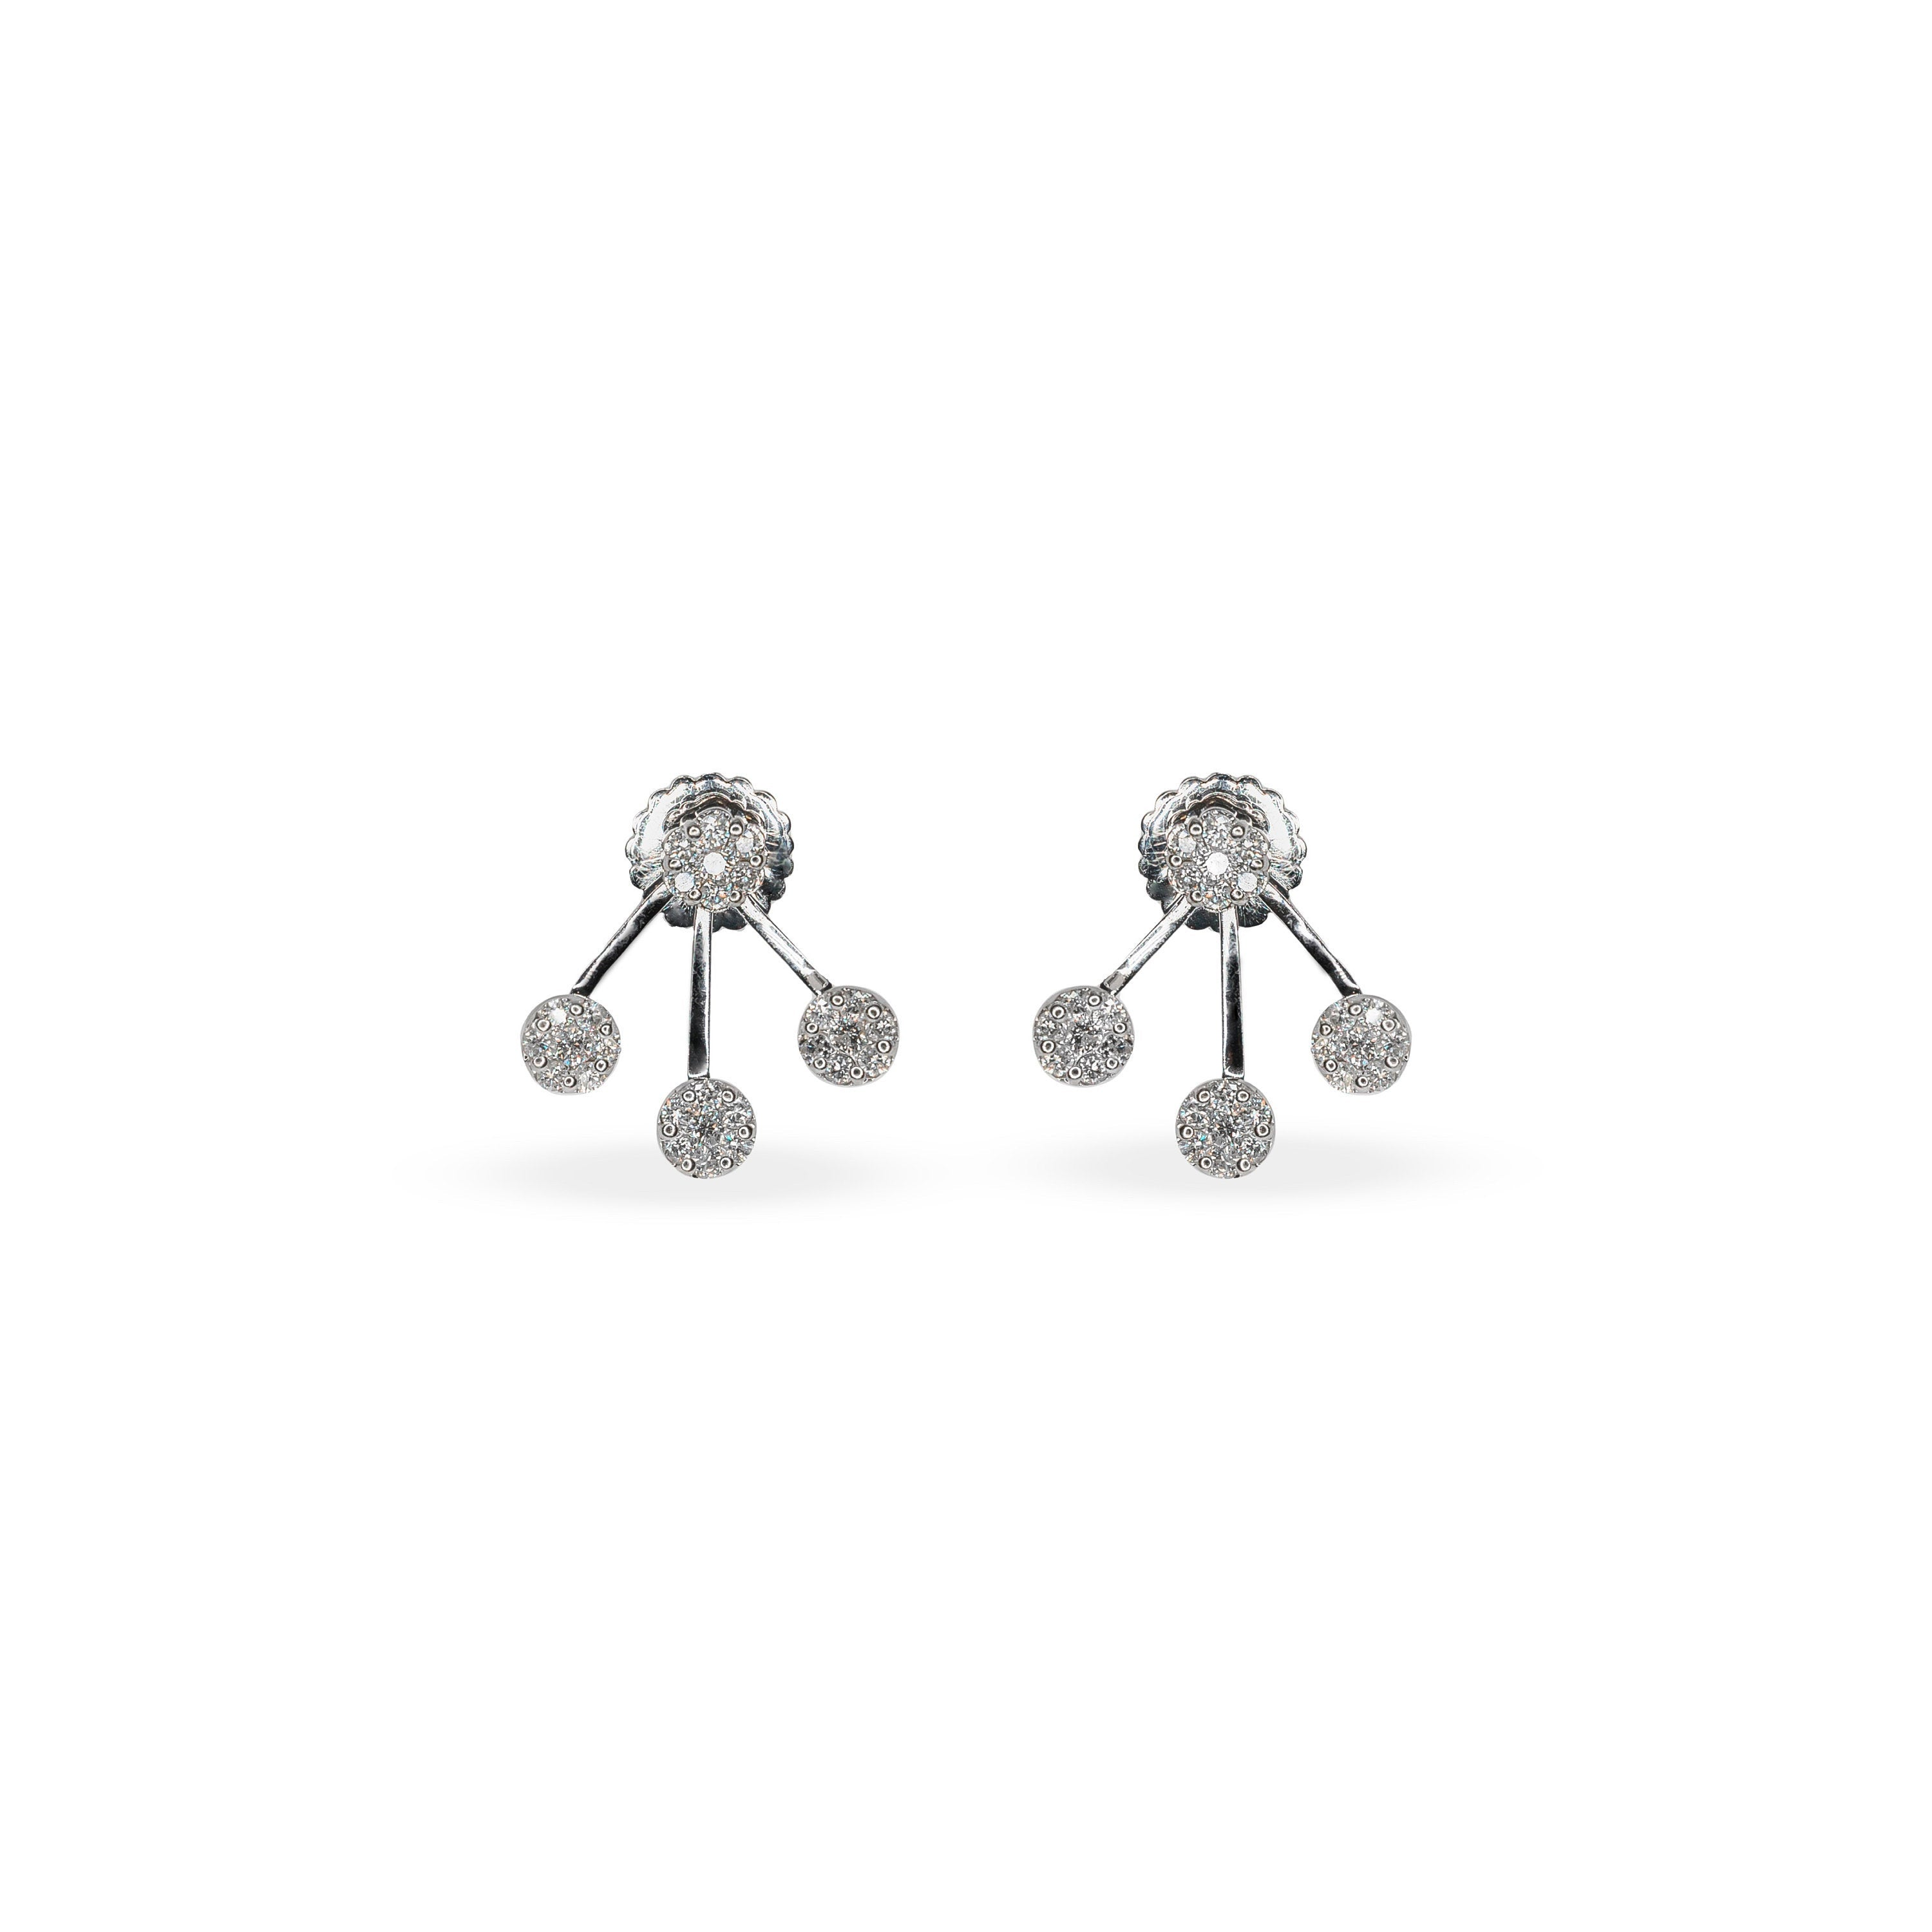 18K White Gold & Diamond Jacket Earring Studs